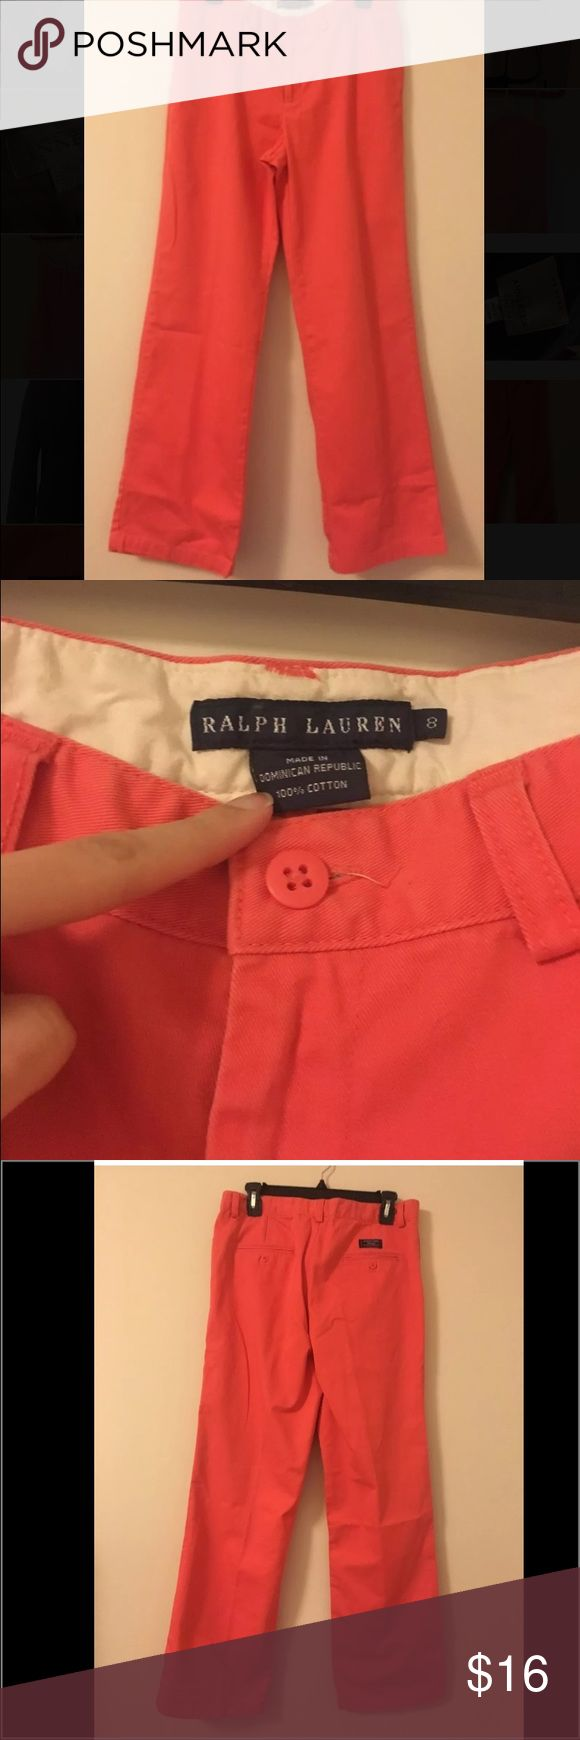 Ralph Lauren orange pants trouser size 8 This is pre owned Ralph Lauren pants. It's in a great condition. Was only worn a couple of times. Size 8.  Check the images and let me know if you have any questions. Ralph Lauren Pants Trousers